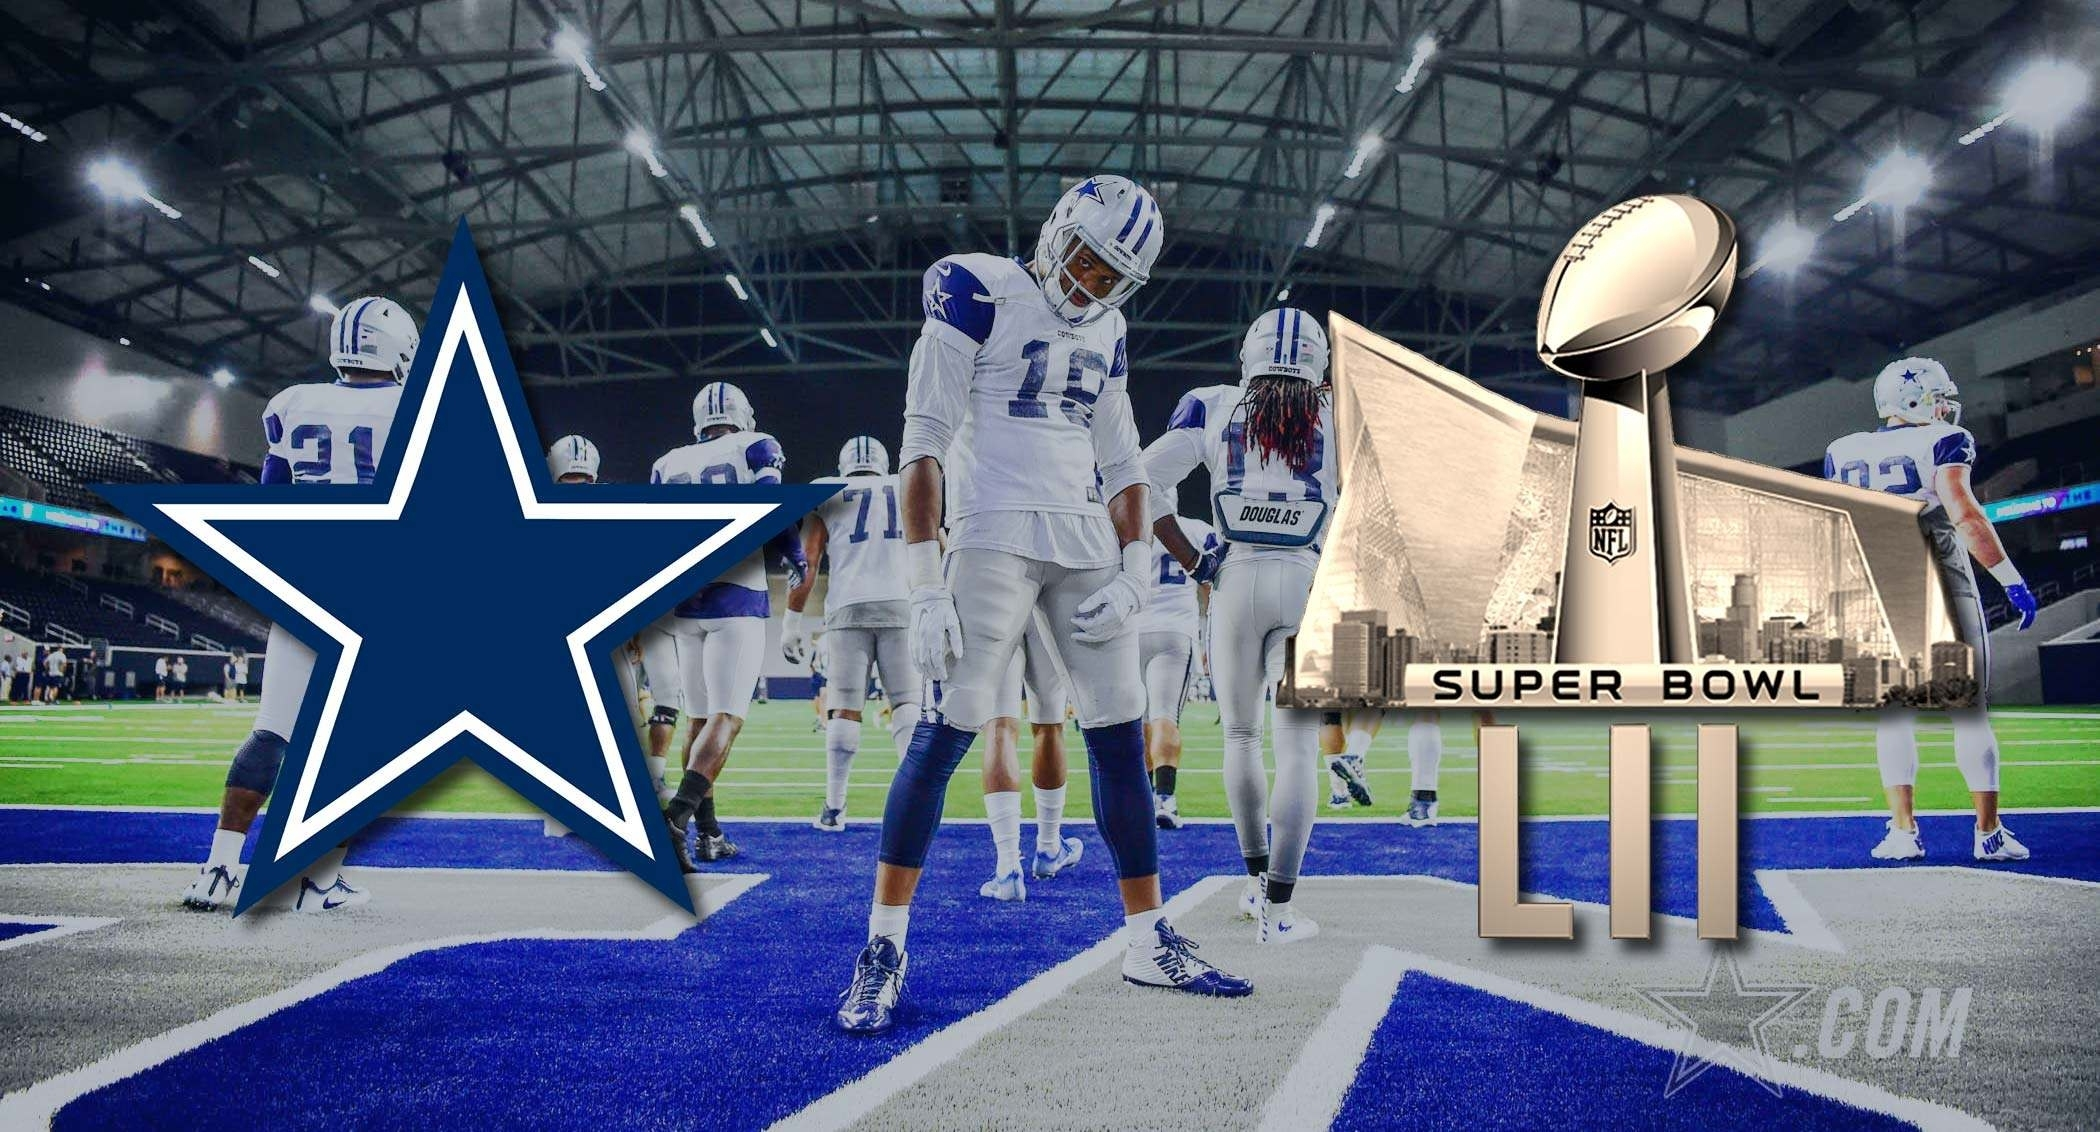 Will The Dallas Cowboys Represent The Nfc In Super Bowl Lii? ✭ pertaining to Super Bowl Lii Mvp Voting